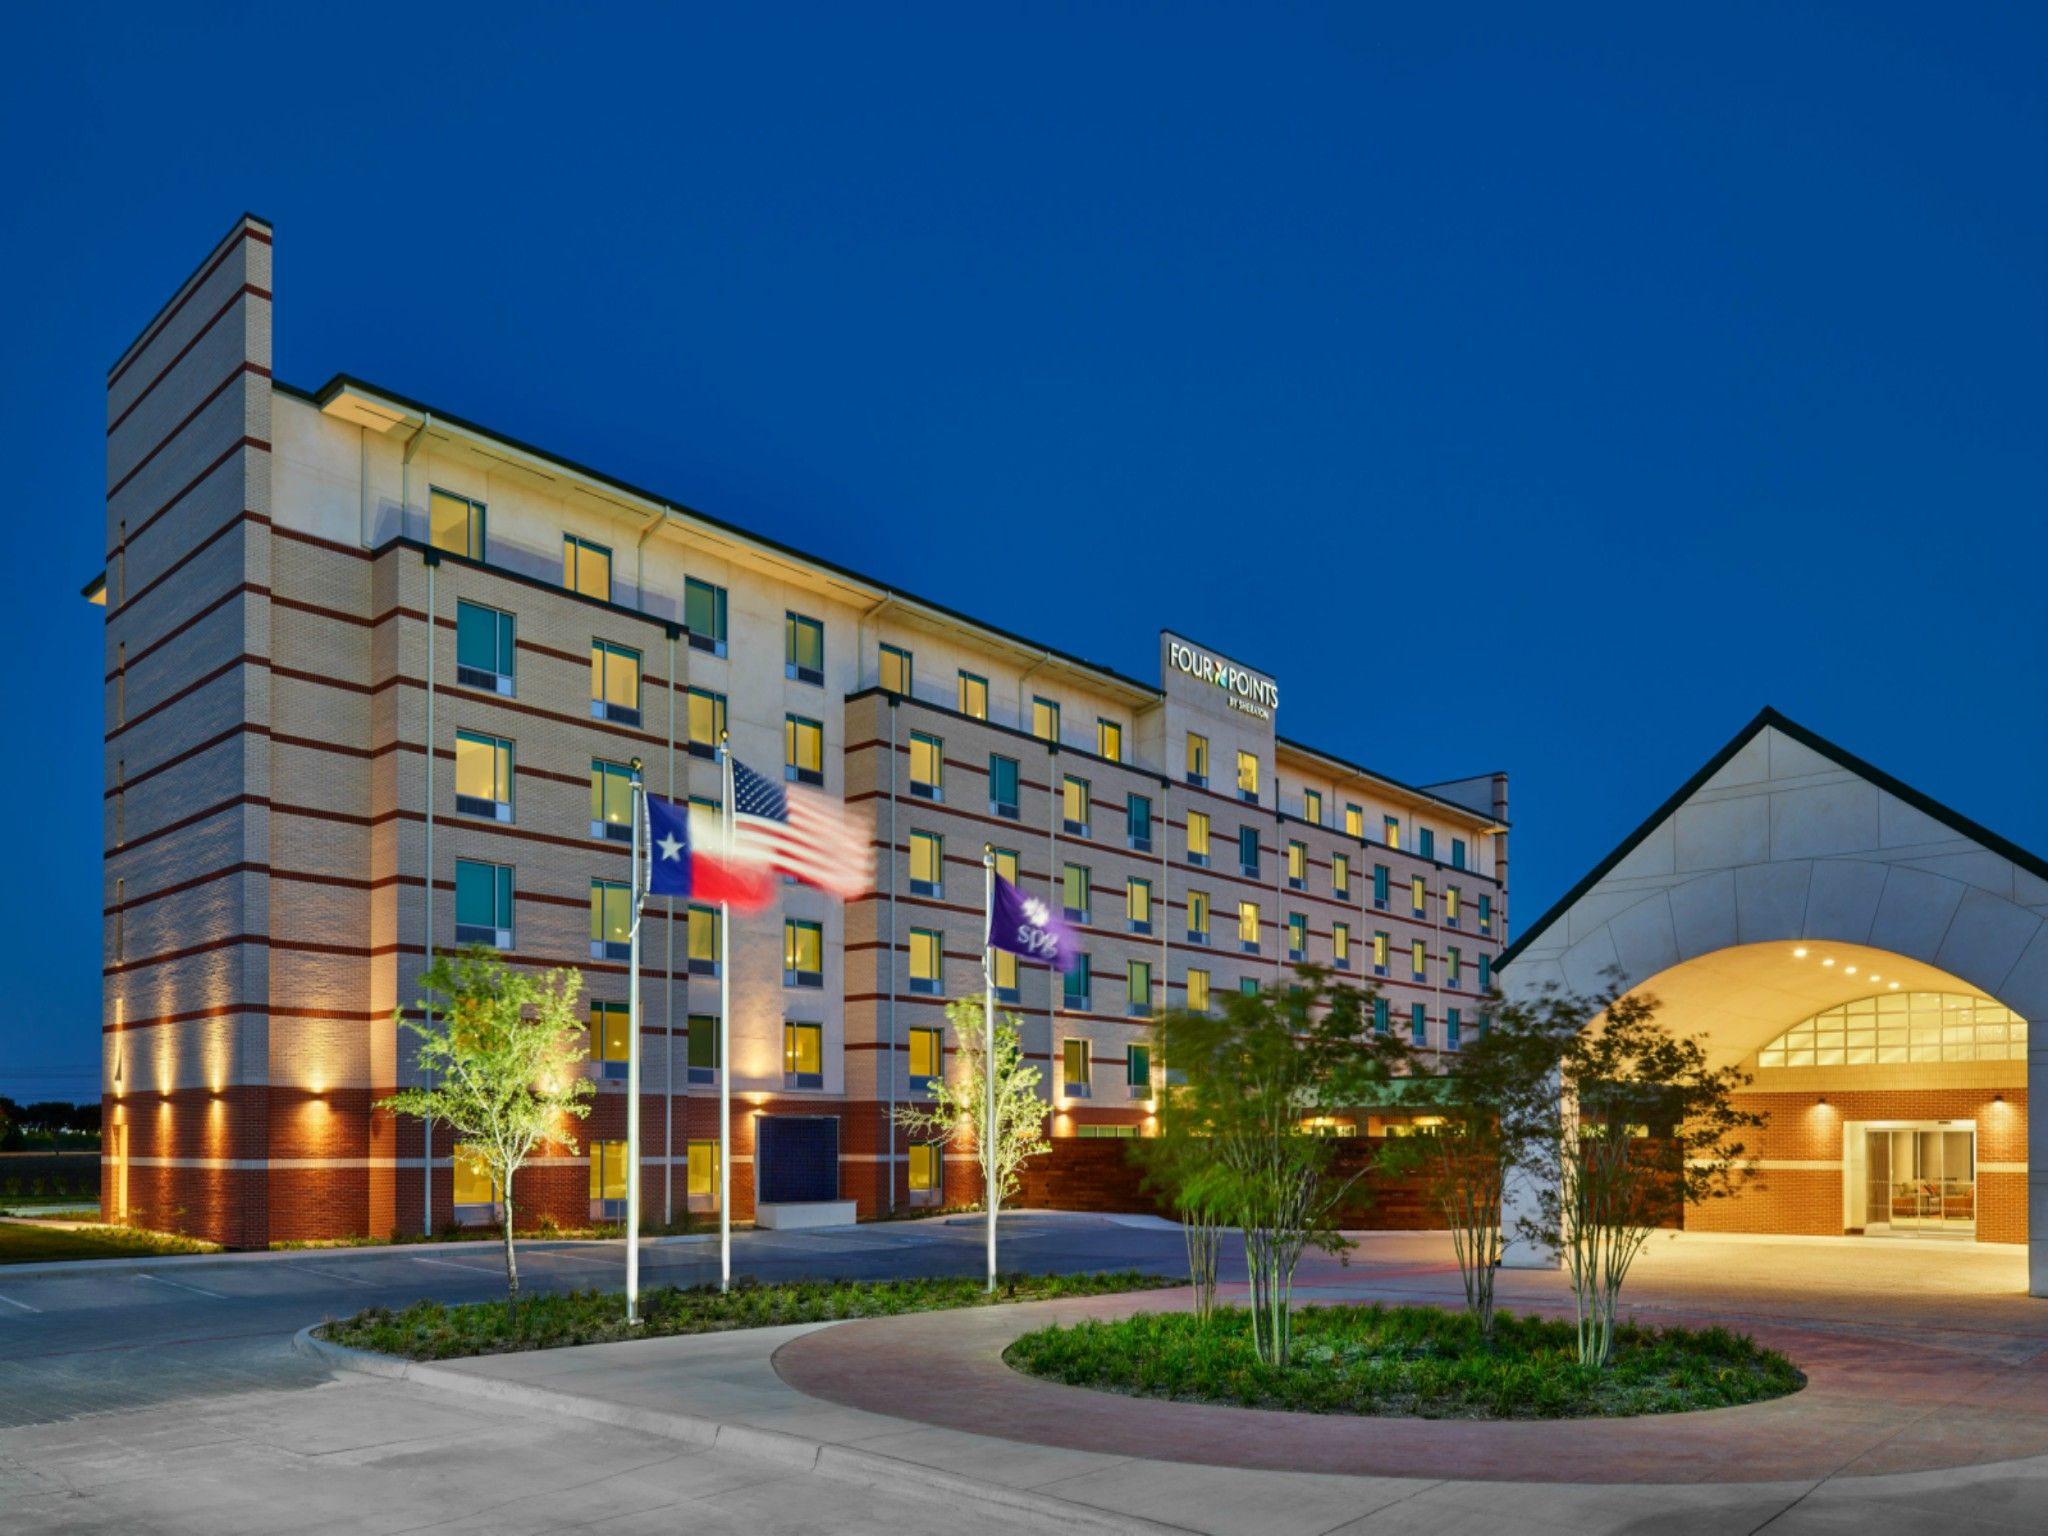 Hotels Near Dfw Four Points By Sheraton Dallas Fort Worth Airport North